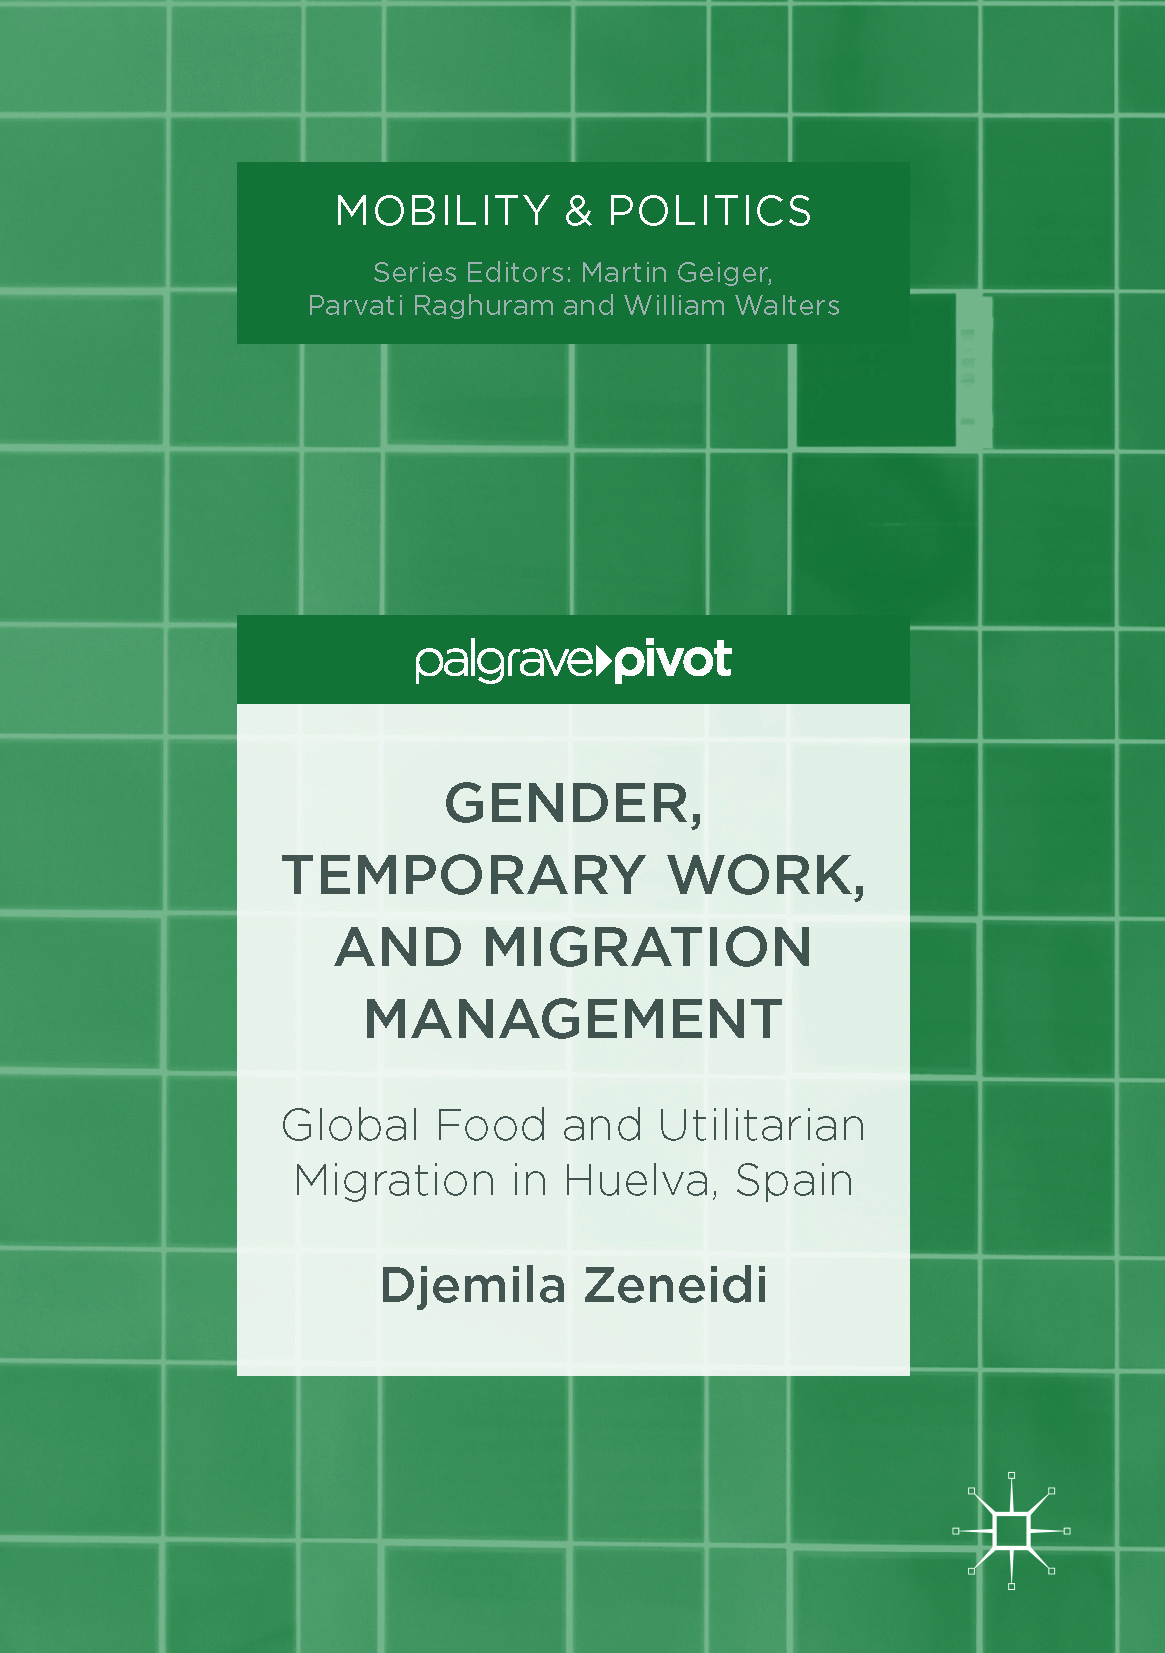 Zeneidi, Djemila - Gender, Temporary Work, and Migration Management, ebook